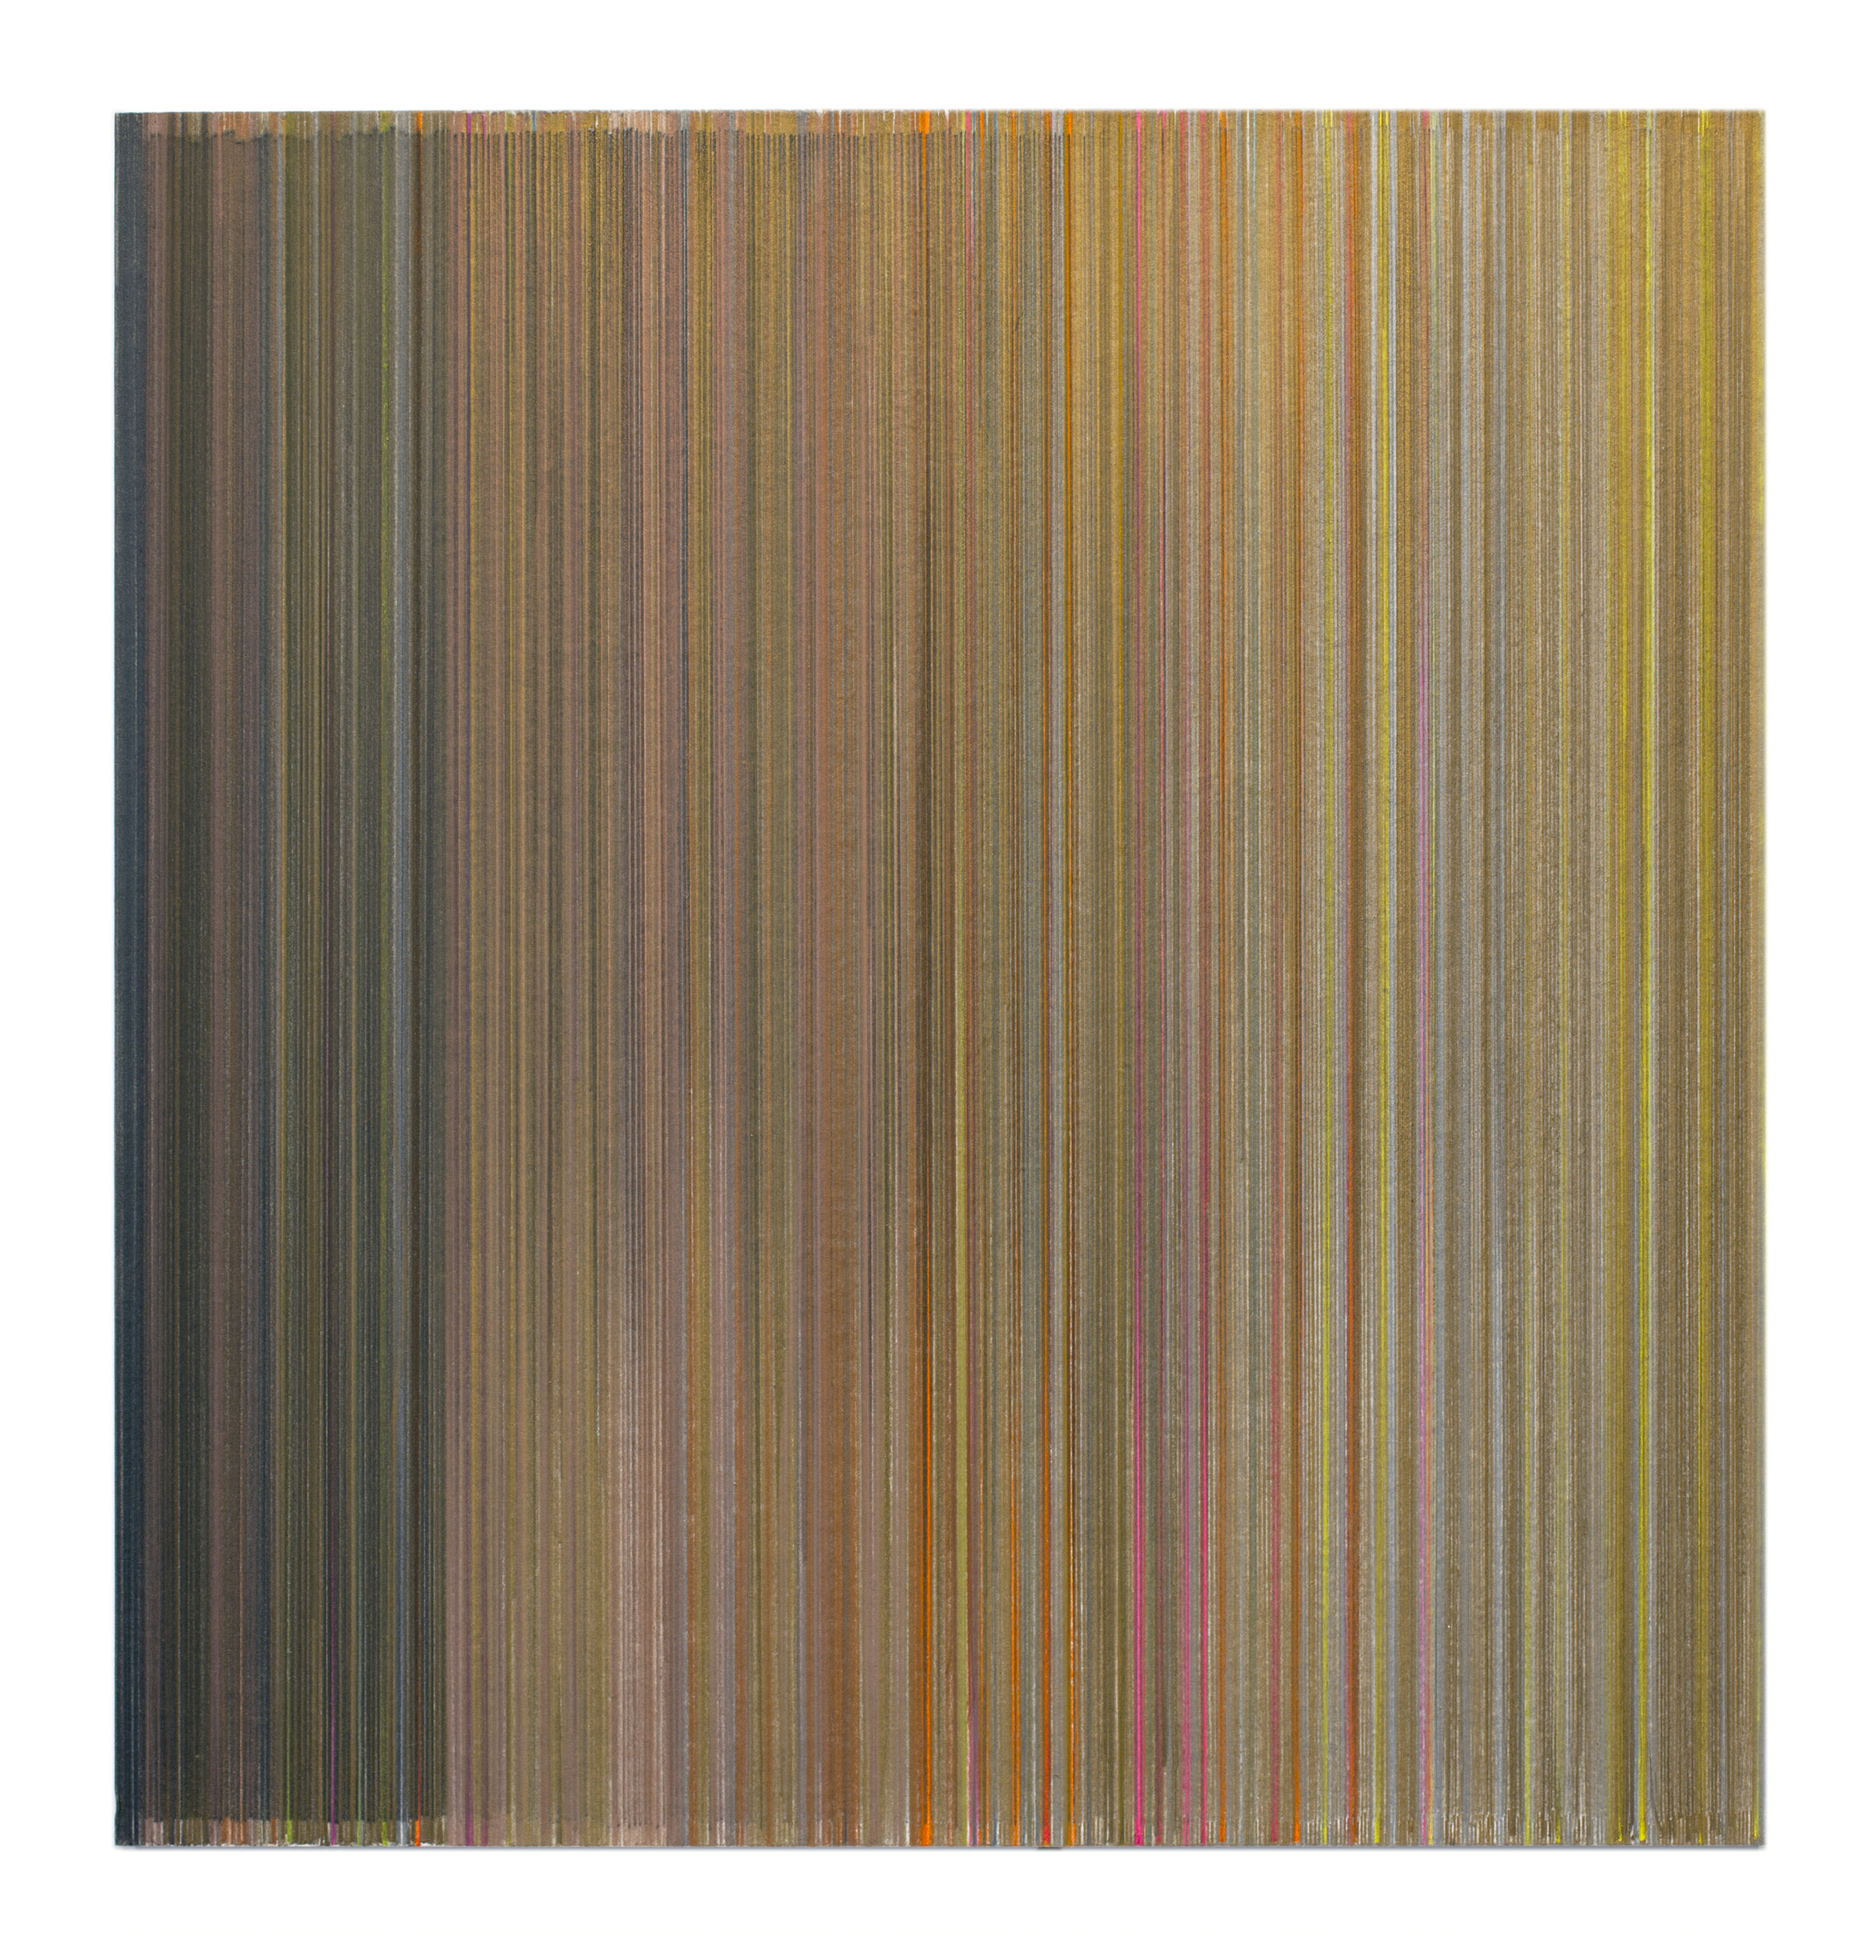 """then this  2017 graphite and colored pencil on mat board 18 by 19 inches title from poem by Alice Oswald """"         96              Normal   0           false   false   false     EN-US   X-NONE   X-NONE                                                                                                                                                                                                                                                                                                                                                                                                                                                                                                                                                                                                                                                                                                                                                                                                                                                                                     /* Style Definitions */ table.MsoNormalTable {mso-style-name:""""Table Normal""""; mso-tstyle-rowband-size:0; mso-tstyle-colband-size:0; mso-style-noshow:yes; mso-style-priority:99; mso-style-parent:""""""""; mso-padding-alt:0in 5.4pt 0in 5.4pt; mso-para-margin:0in; mso-para-margin-bottom:.0001pt; mso-pagination:widow-orphan; font-size:12.0pt; font-family:Calibri; mso-ascii-font-family:Calibri; mso-ascii-theme-font:minor-latin; mso-hansi-font-family:Calibri; mso-hansi-theme-font:minor-latin;}              96              Normal   0           false   false   false     EN-US   X-NONE   X-NONE                                                                                                                                                                                                                                                                                                                                                                         """